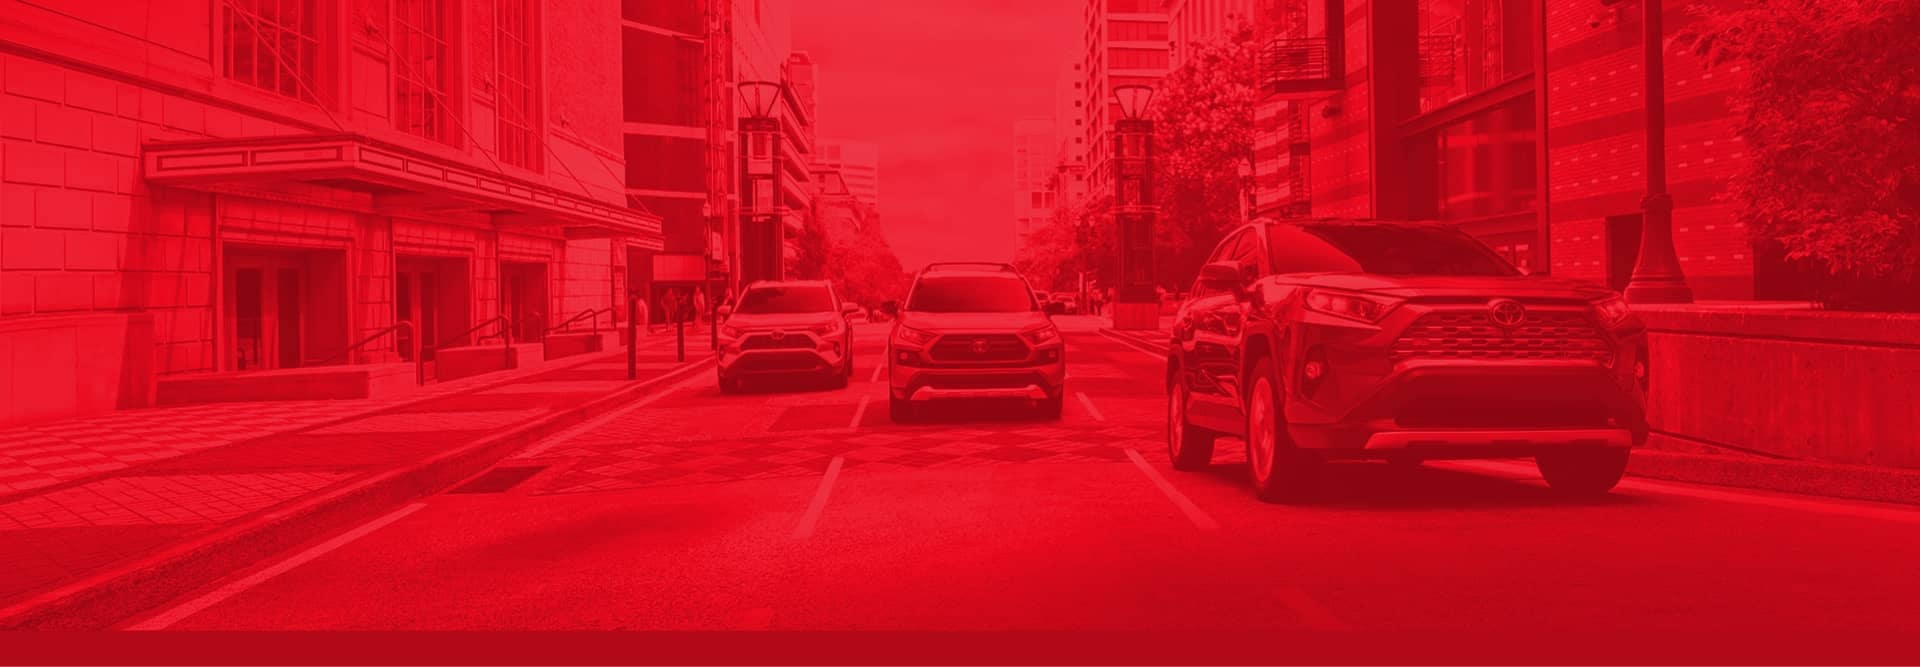 3 toyota suvs in 3 separate lanes driving through city with red color overlaying image